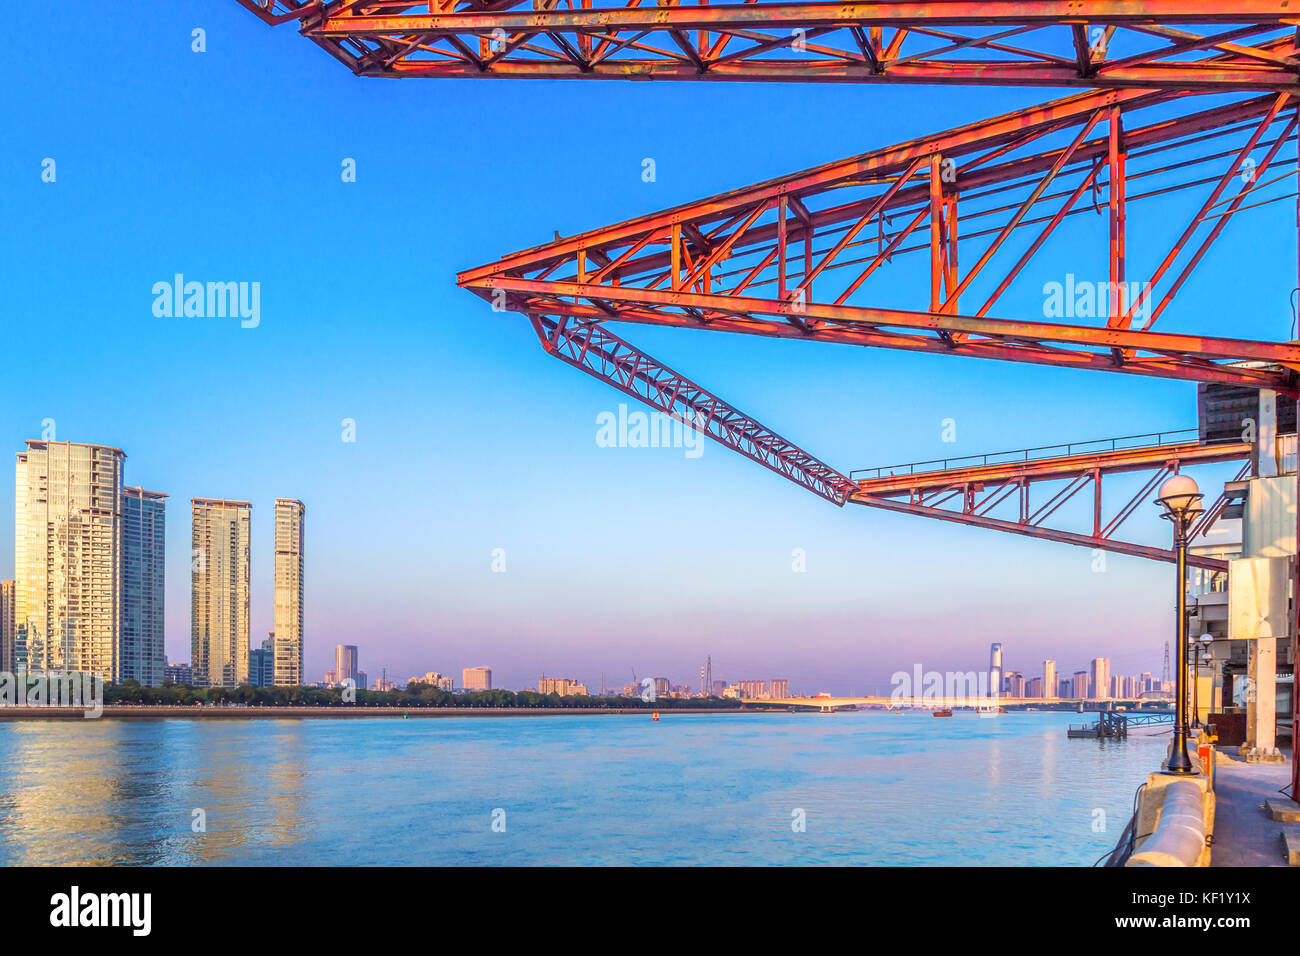 Guangzhou Pearl River scenery - Stock Image